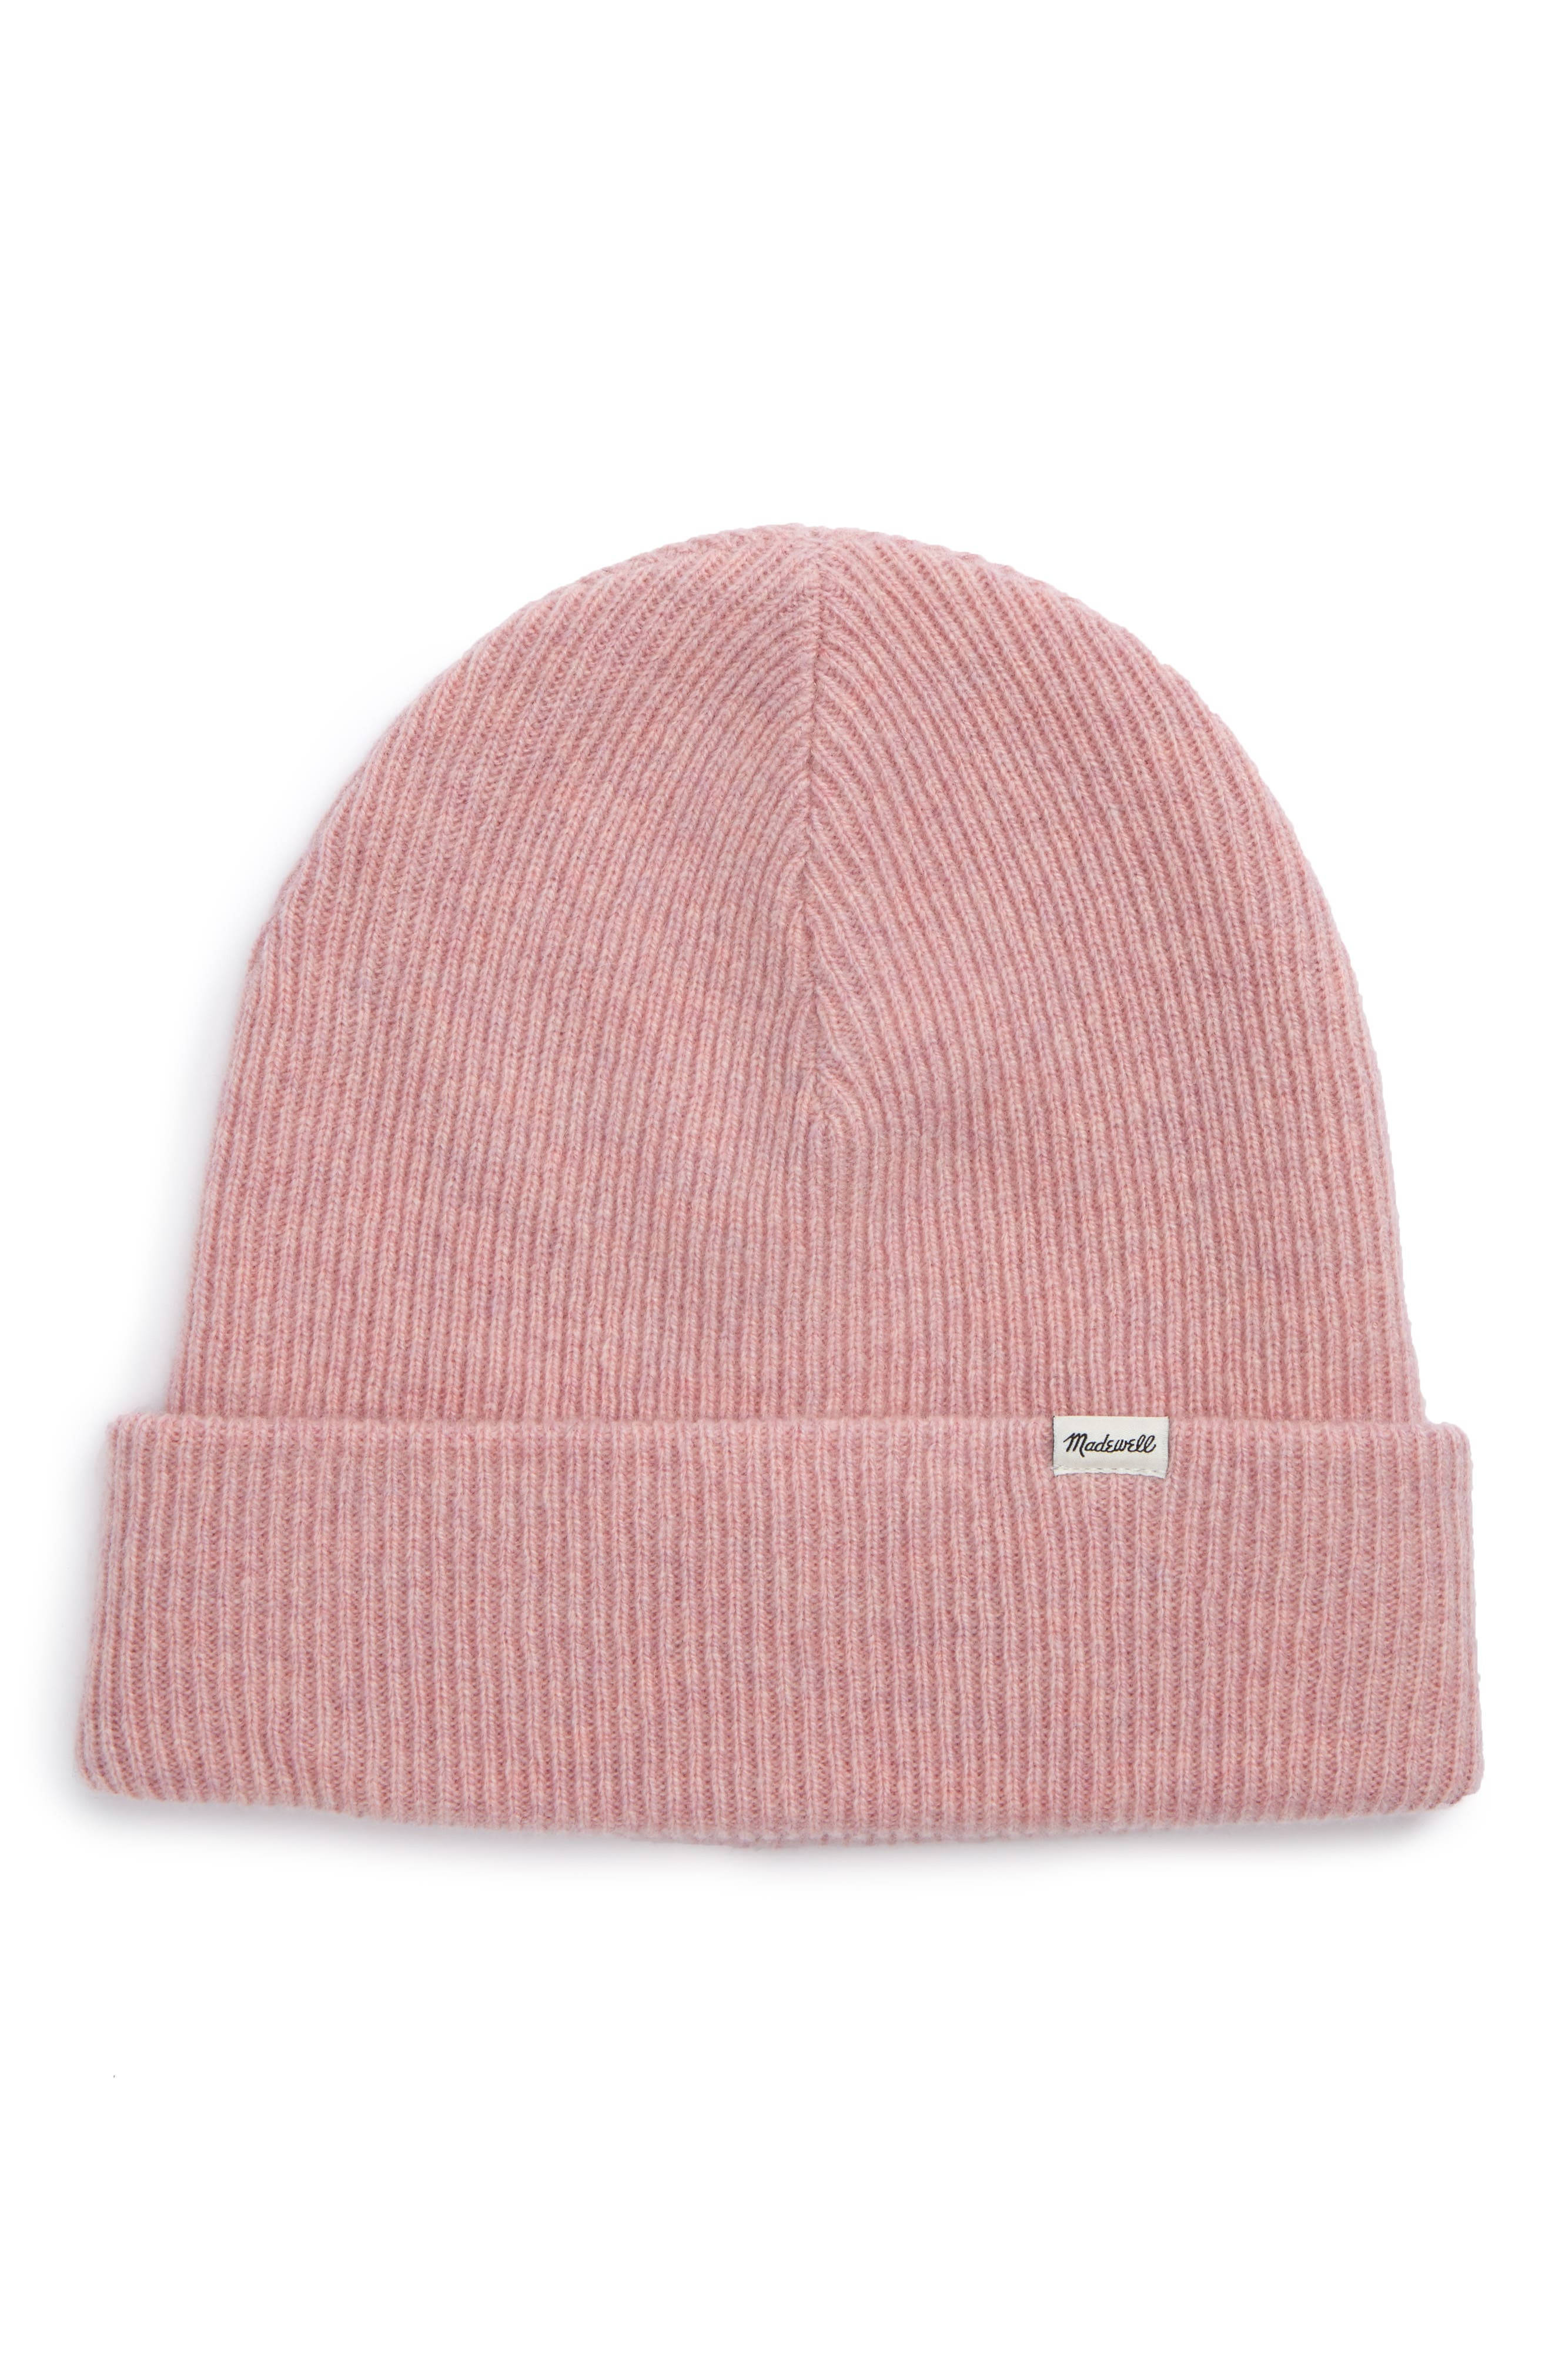 Madewell Women s Hats Clothing   Accessories  68a352e9dbc6